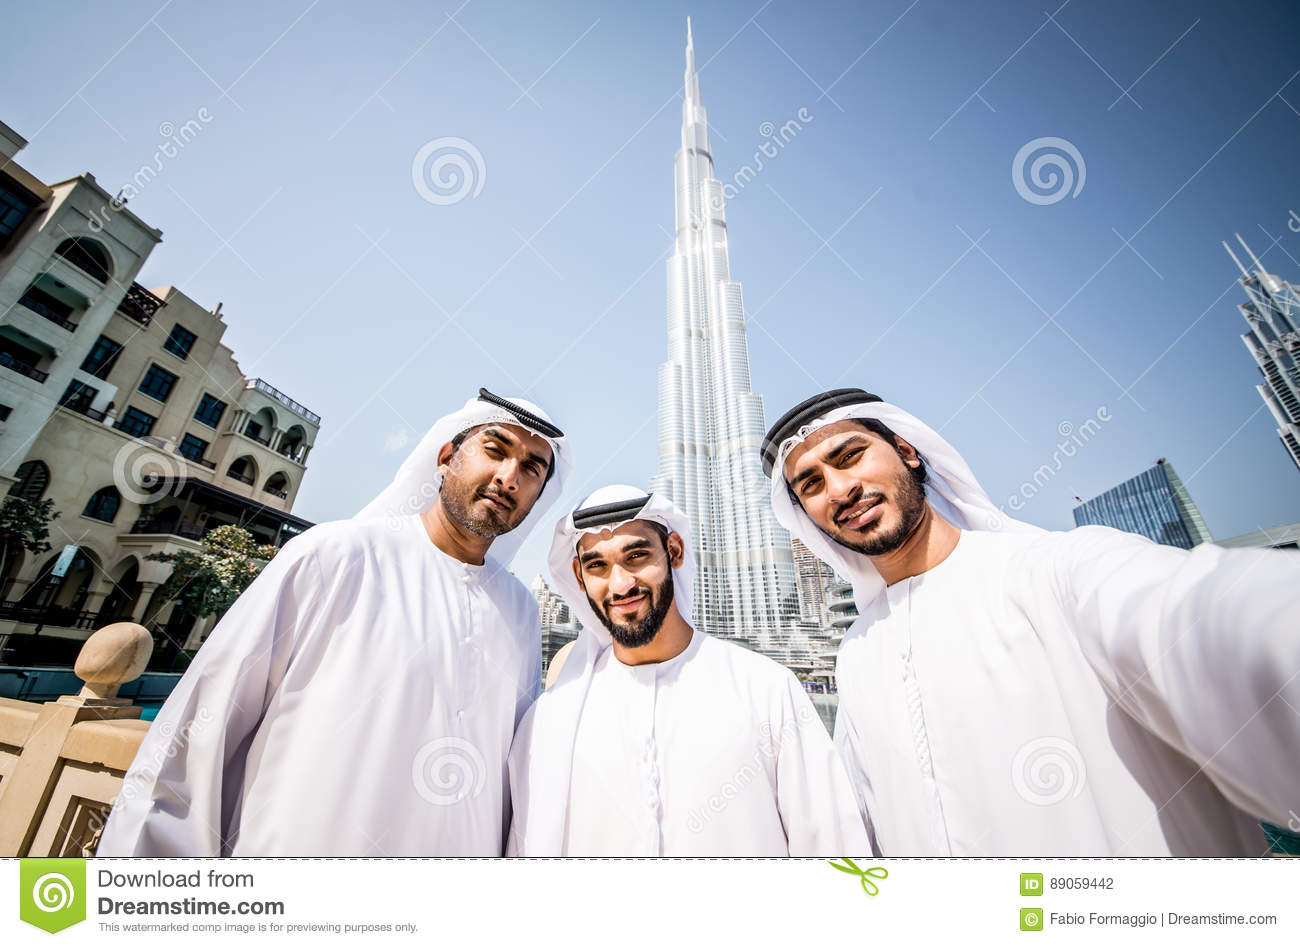 Arabic Business Men Spending Together Stock Photo - Image of